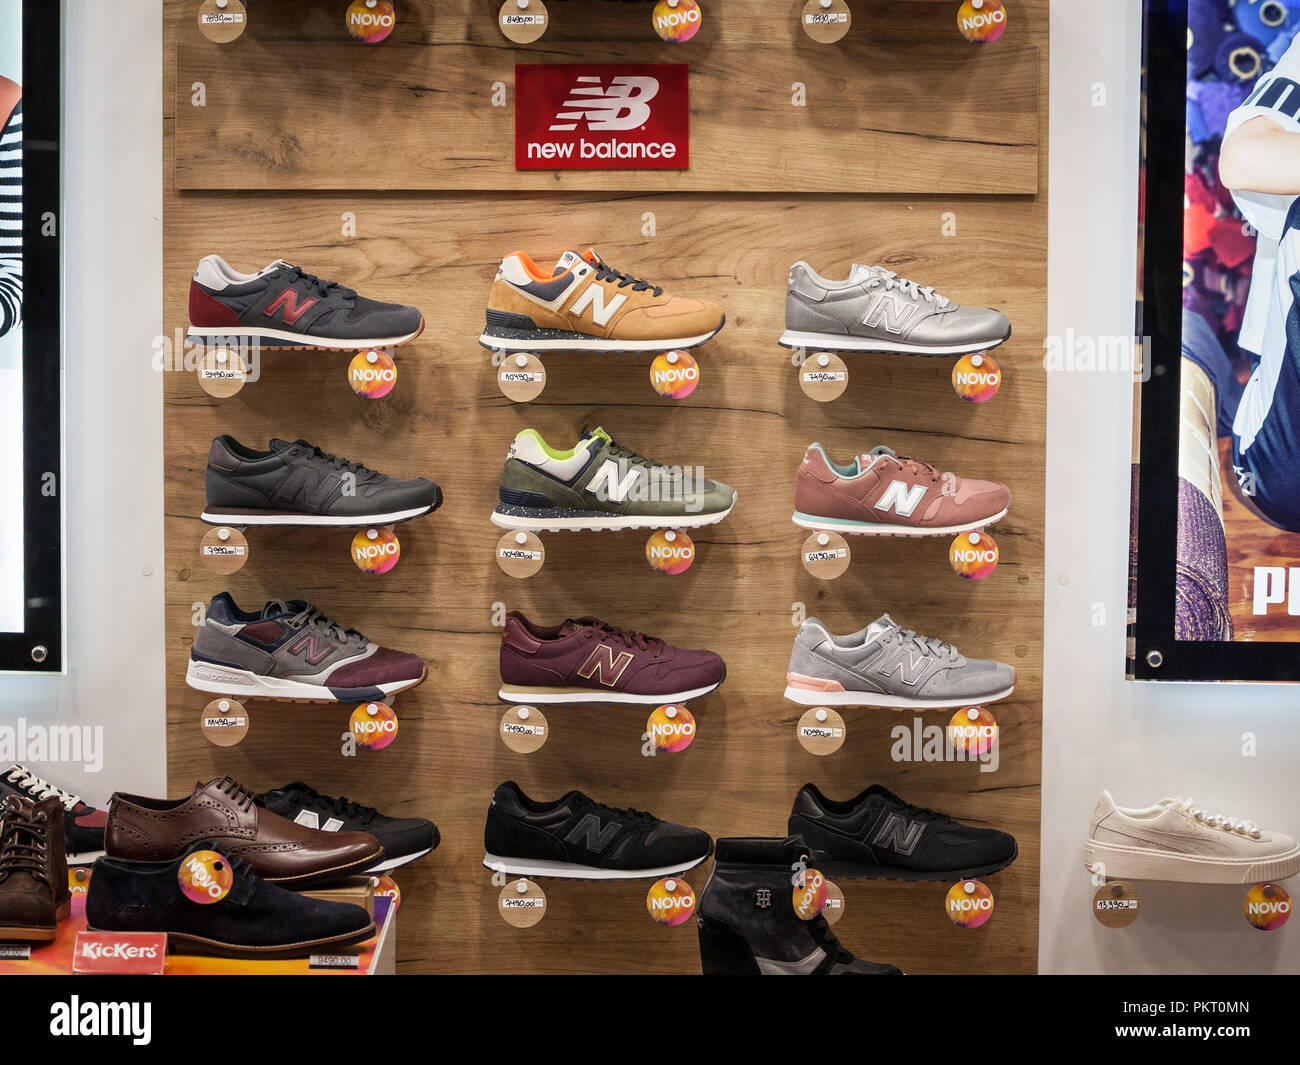 BELGRADE, SERBIA - SEPTEMBER 2, 2018: New Balance logo and sneakers on display in the window of their main retailer in Belgrade. New Balance is an Ame - Stock Image